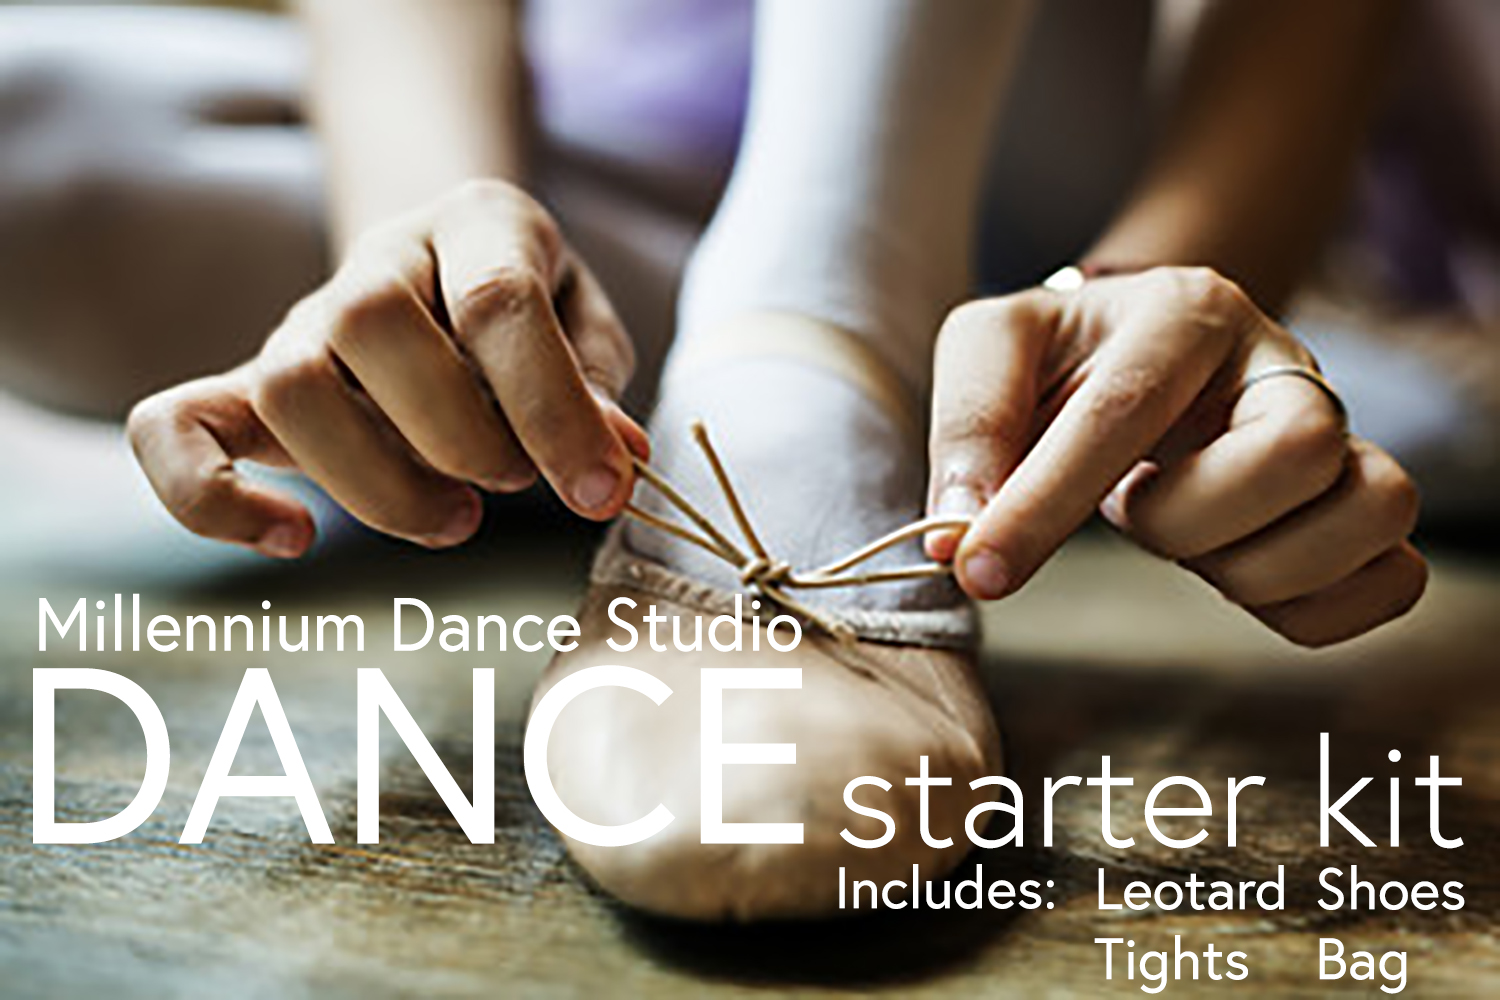 Dance Starter Kit: - Select from:(5) Basic Leotards: Seamless | Cotton-Spandex(4) Tights Styles: Footed | Conv | Stirrup | FootlessBallet Shoes*Tap Shoes*Jazz Shoes*(5) Bag Styles: Duffle | Tote | Drawstring*age group/class requirementOnline ordering opens: August 1, 2019Various colors, shoe sizing available.FREE s/h or in-person pickup